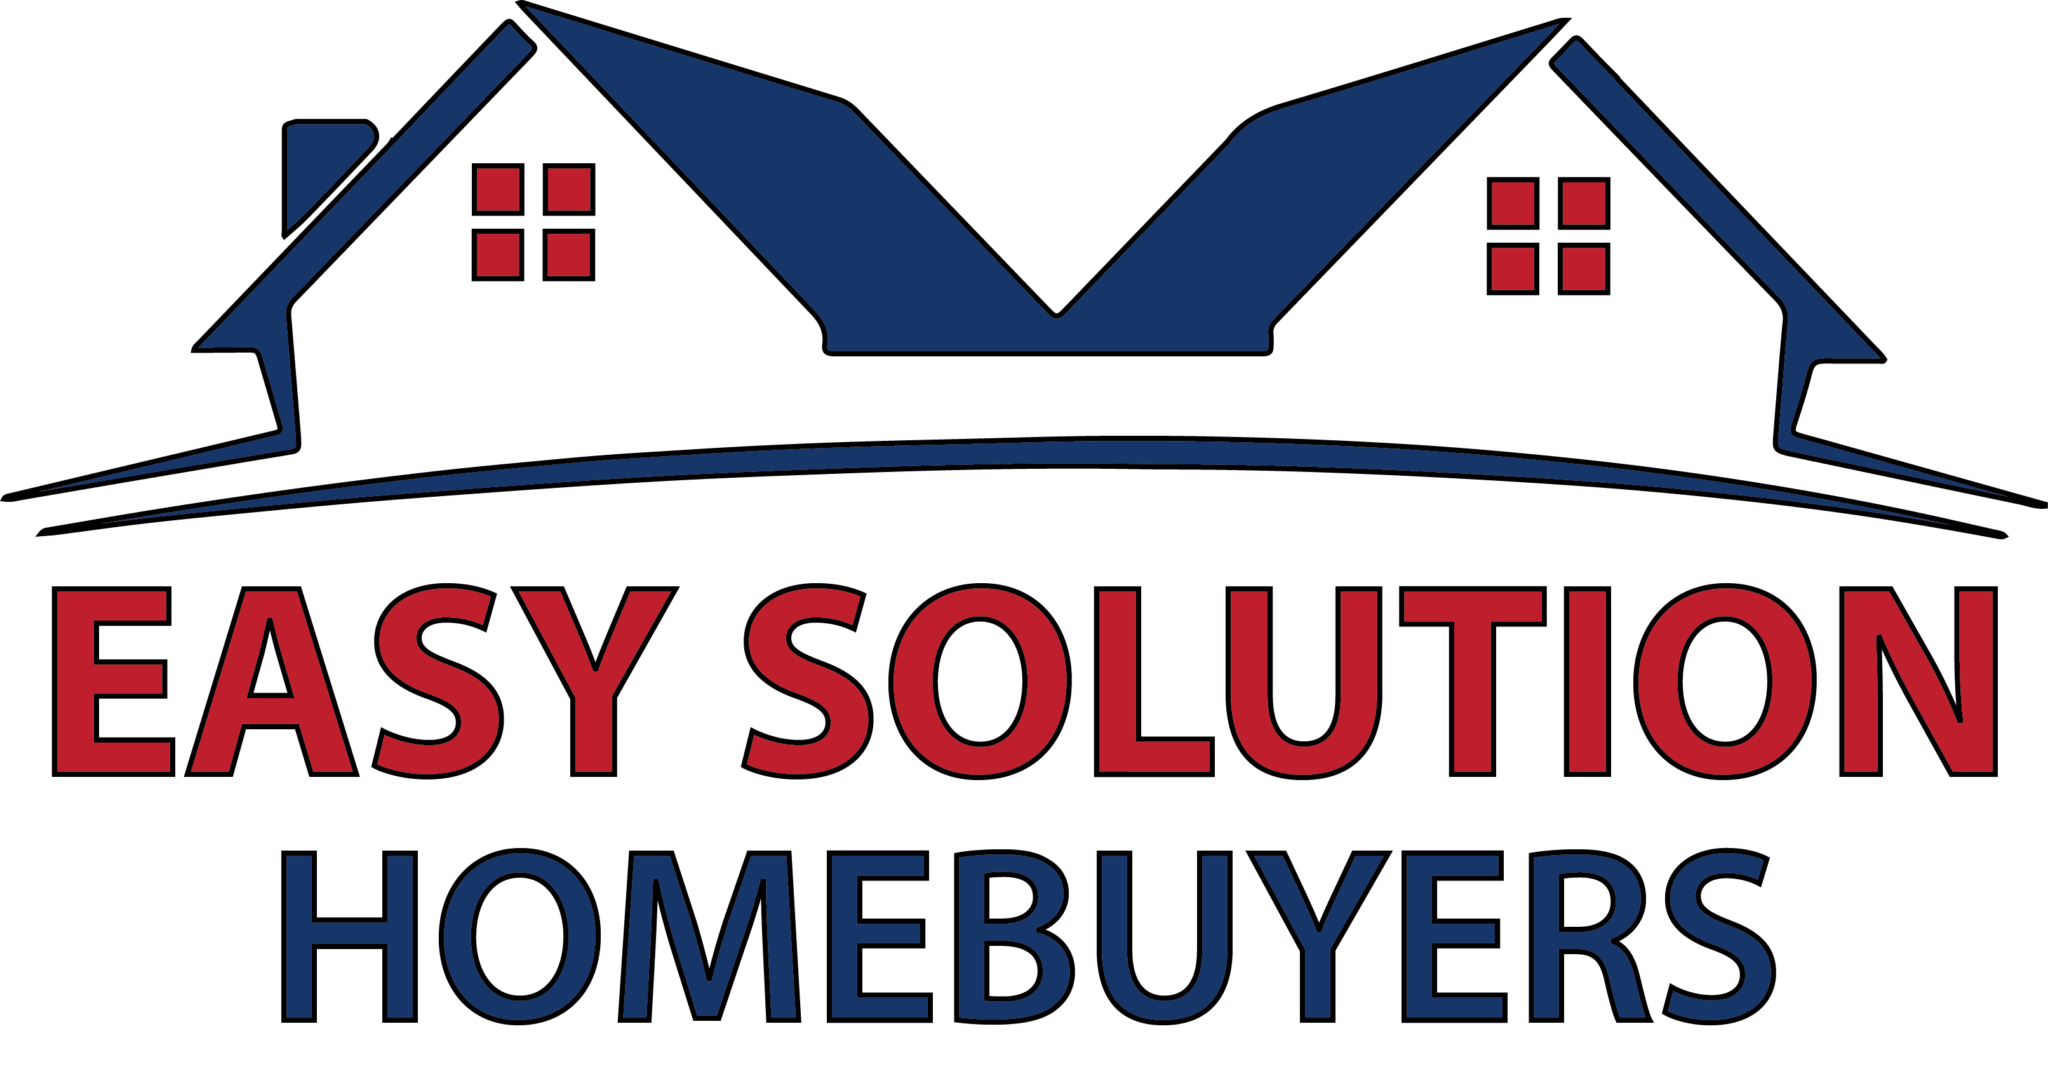 Easy Solution Homebuyers